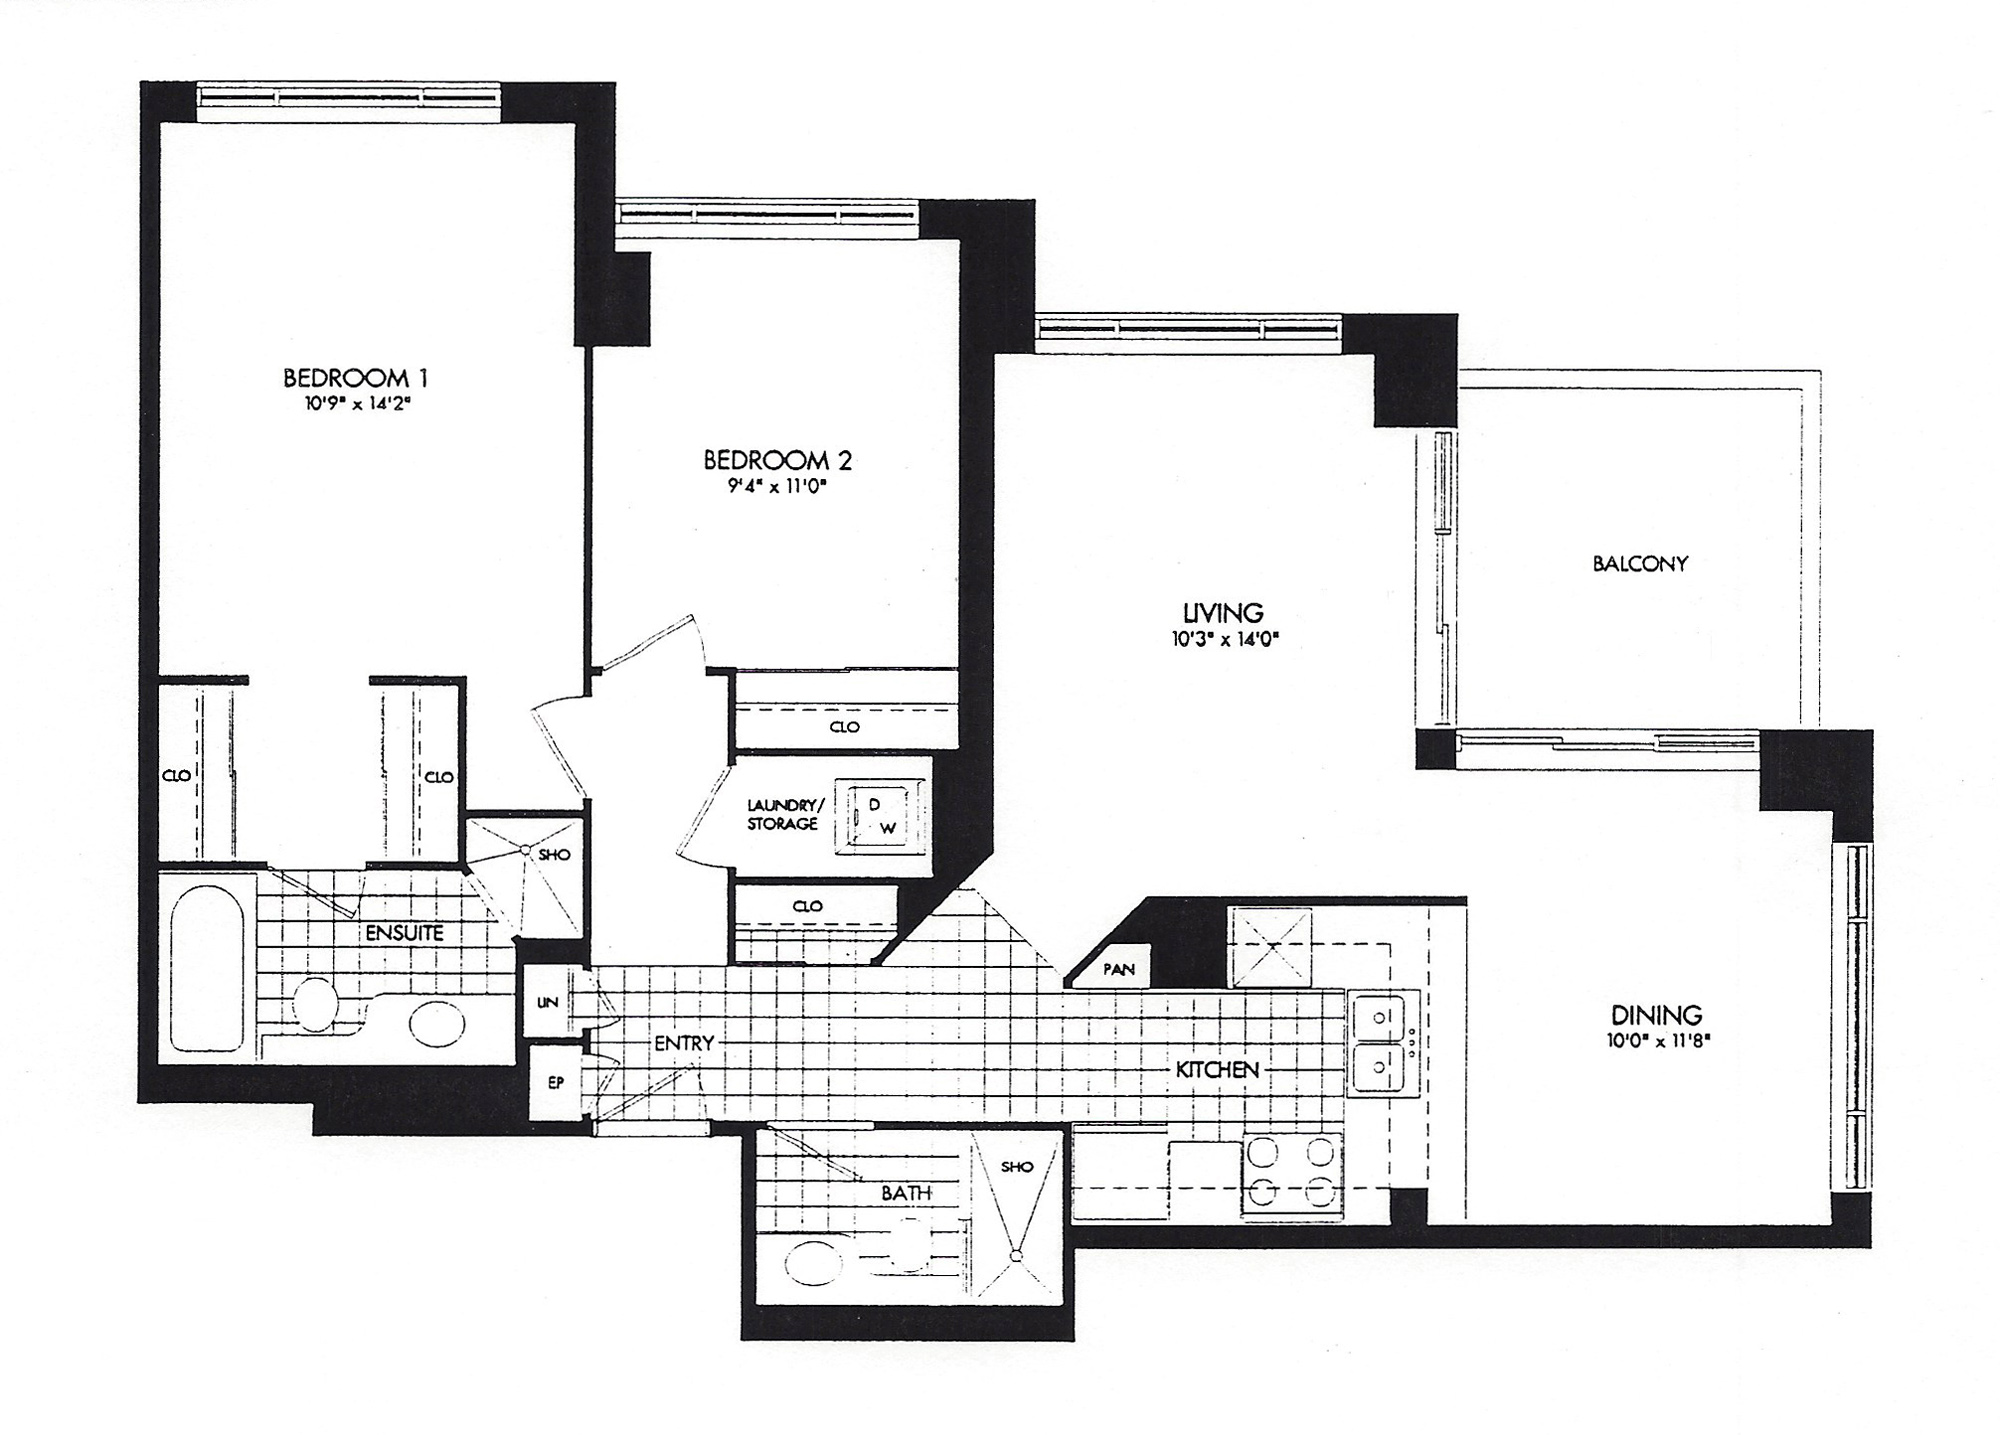 909 bay street suite 2307 stunning condo in the heart of for Floor plans 761 bay street